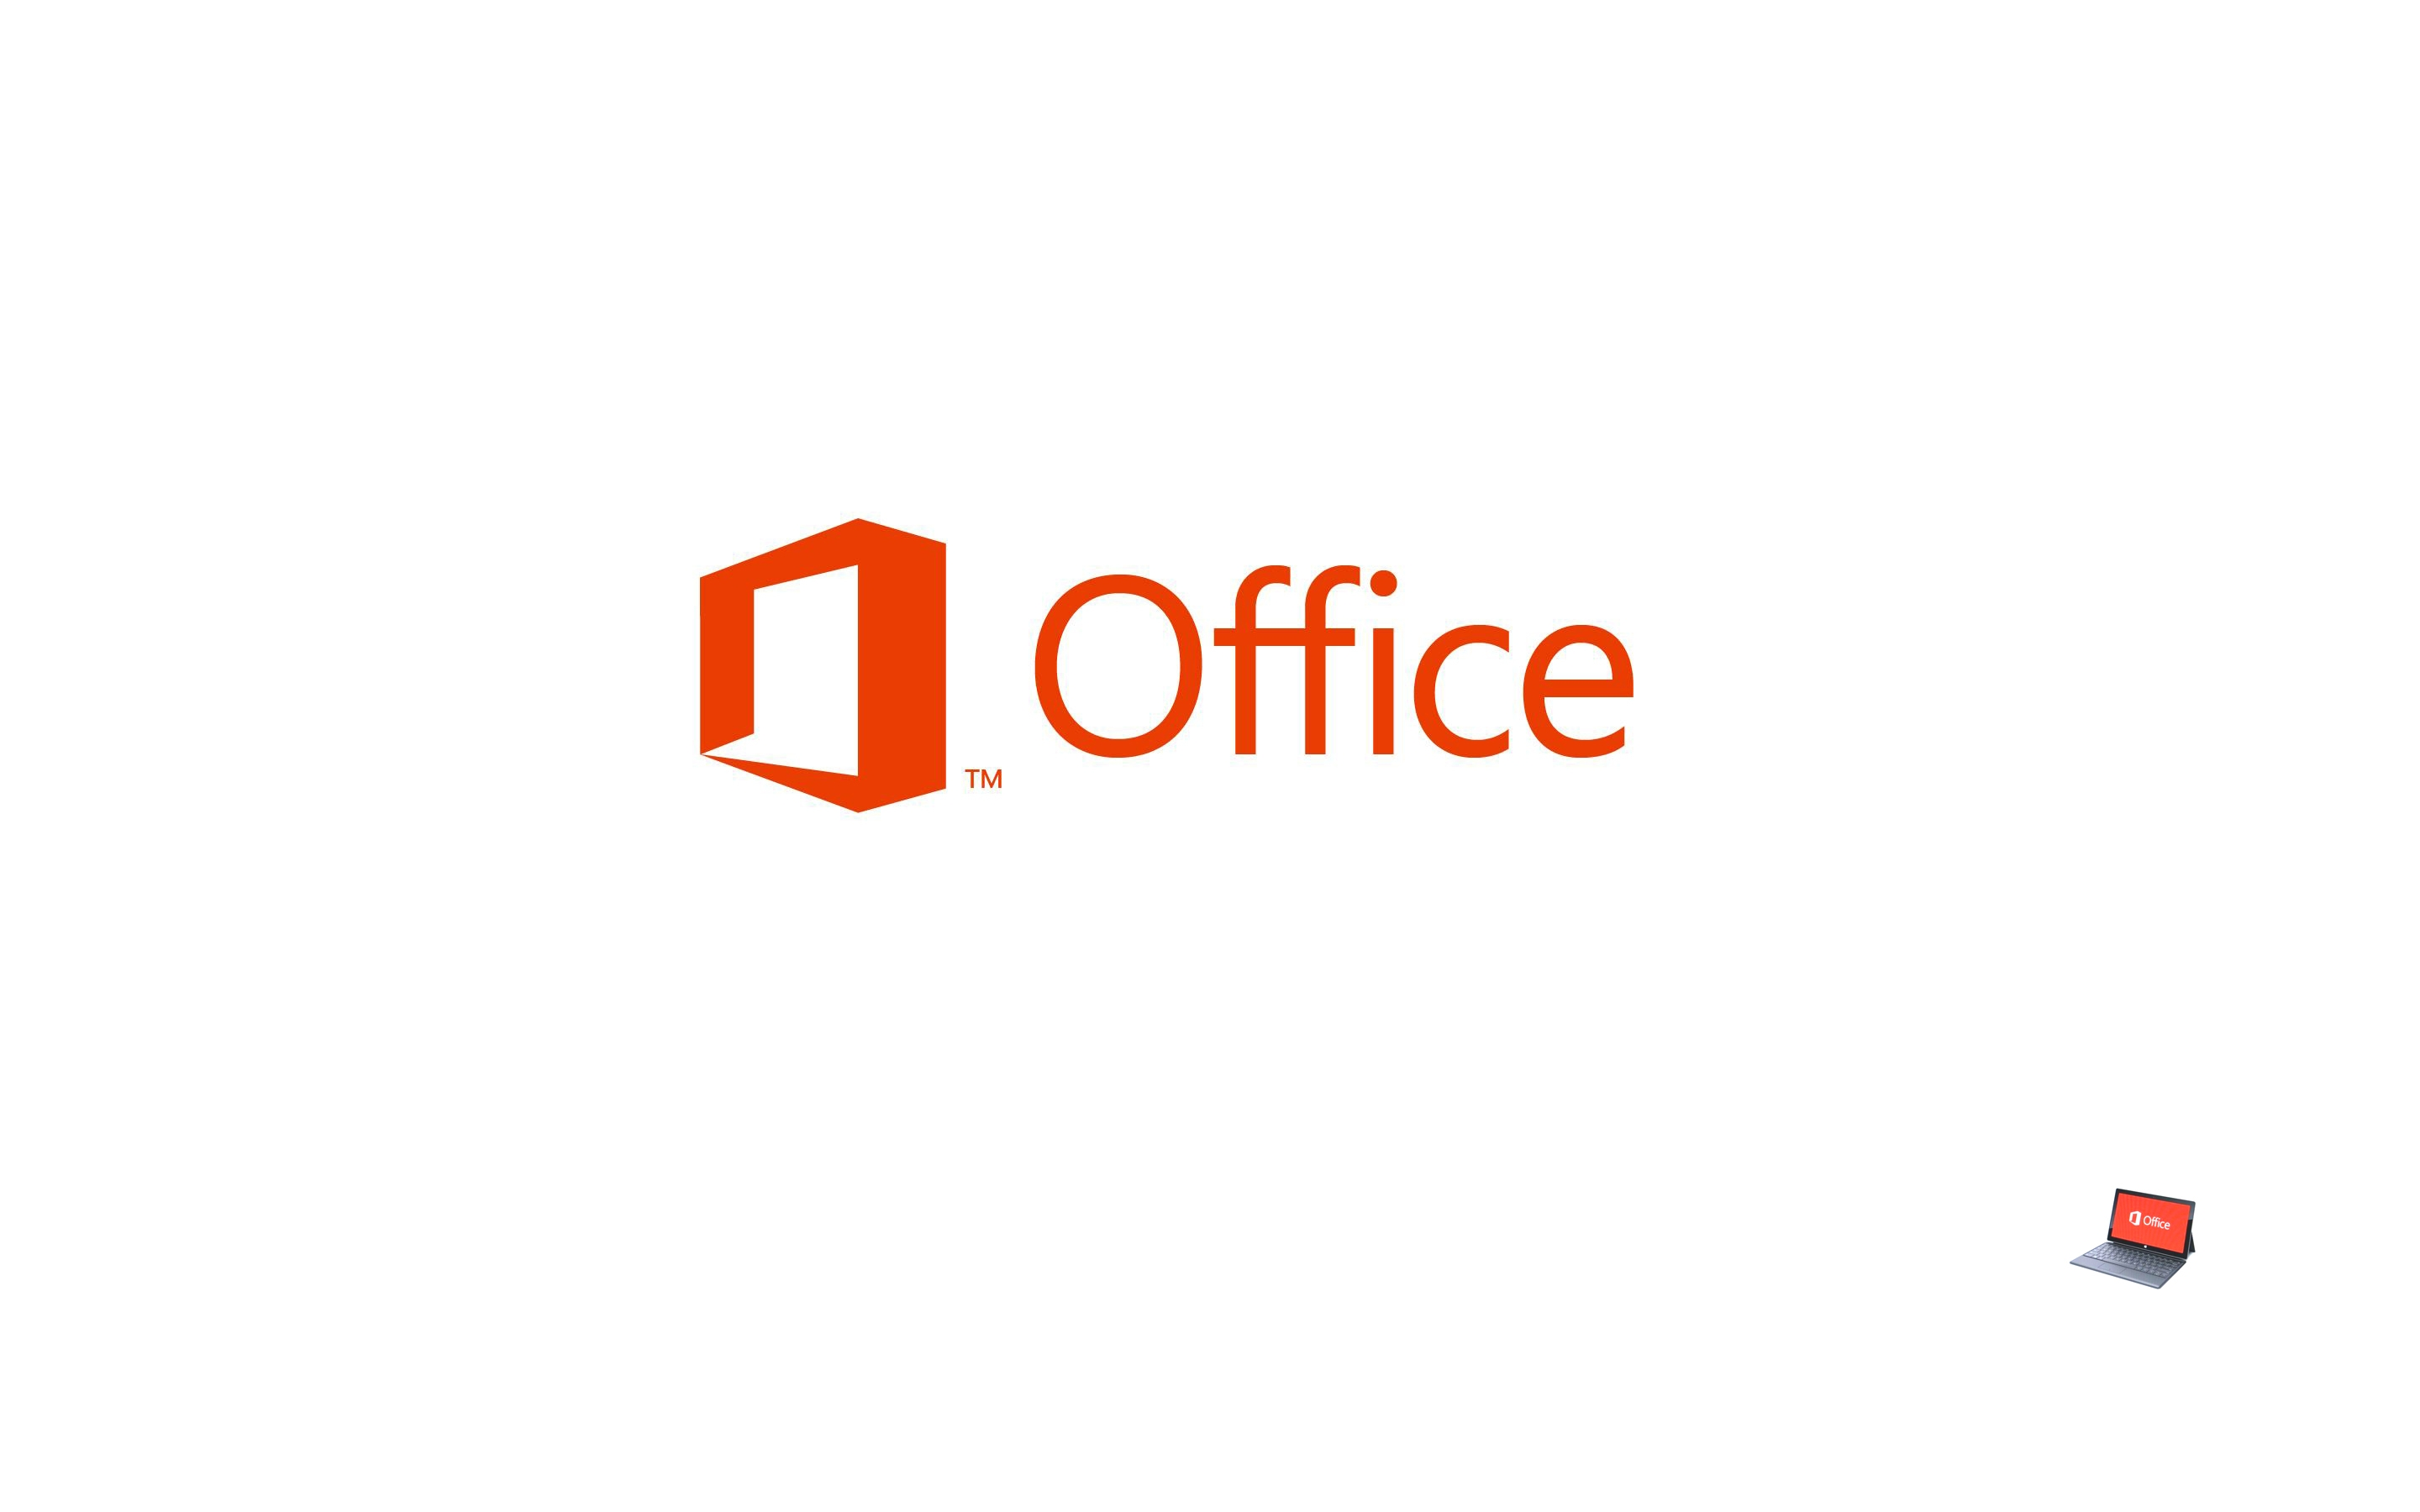 Microsoft wallpapers photos and desktop backgrounds up to for Office logo